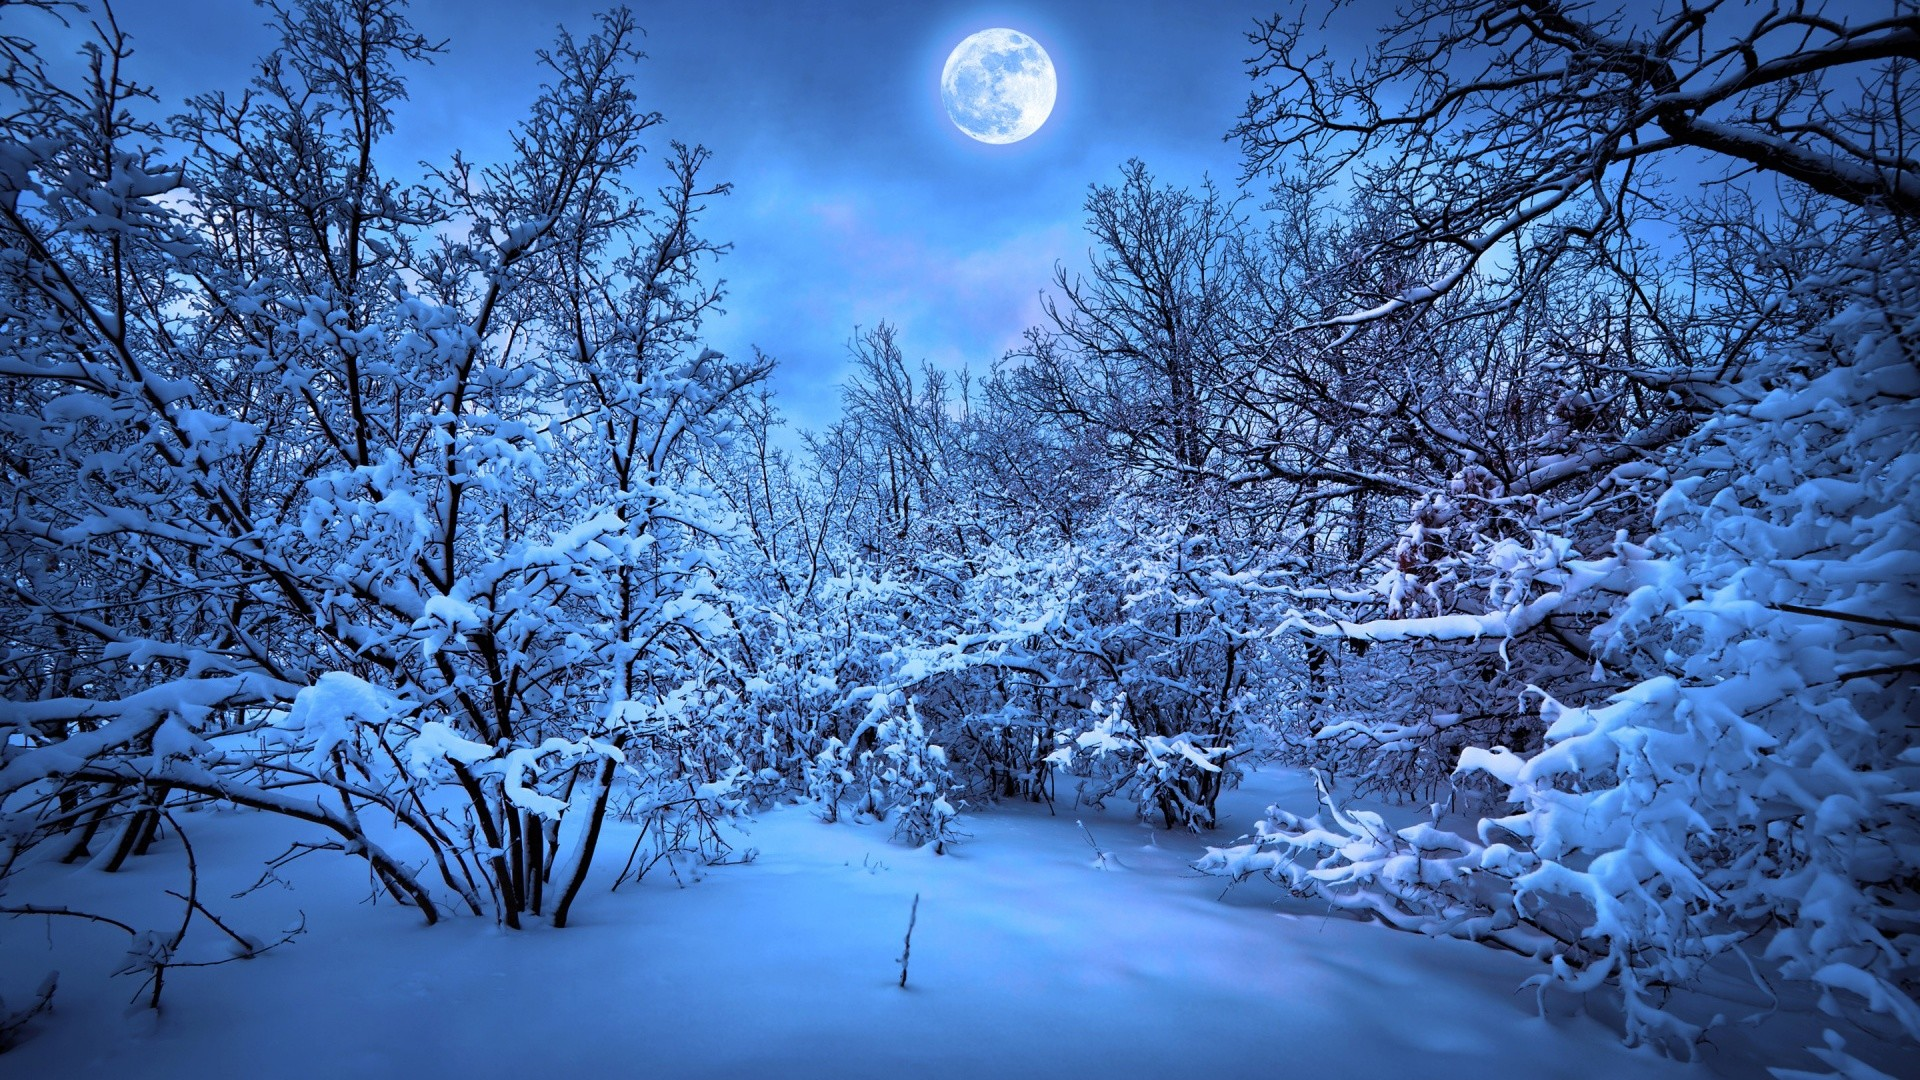 1920x1080  Blue Winter Forest Full Moon